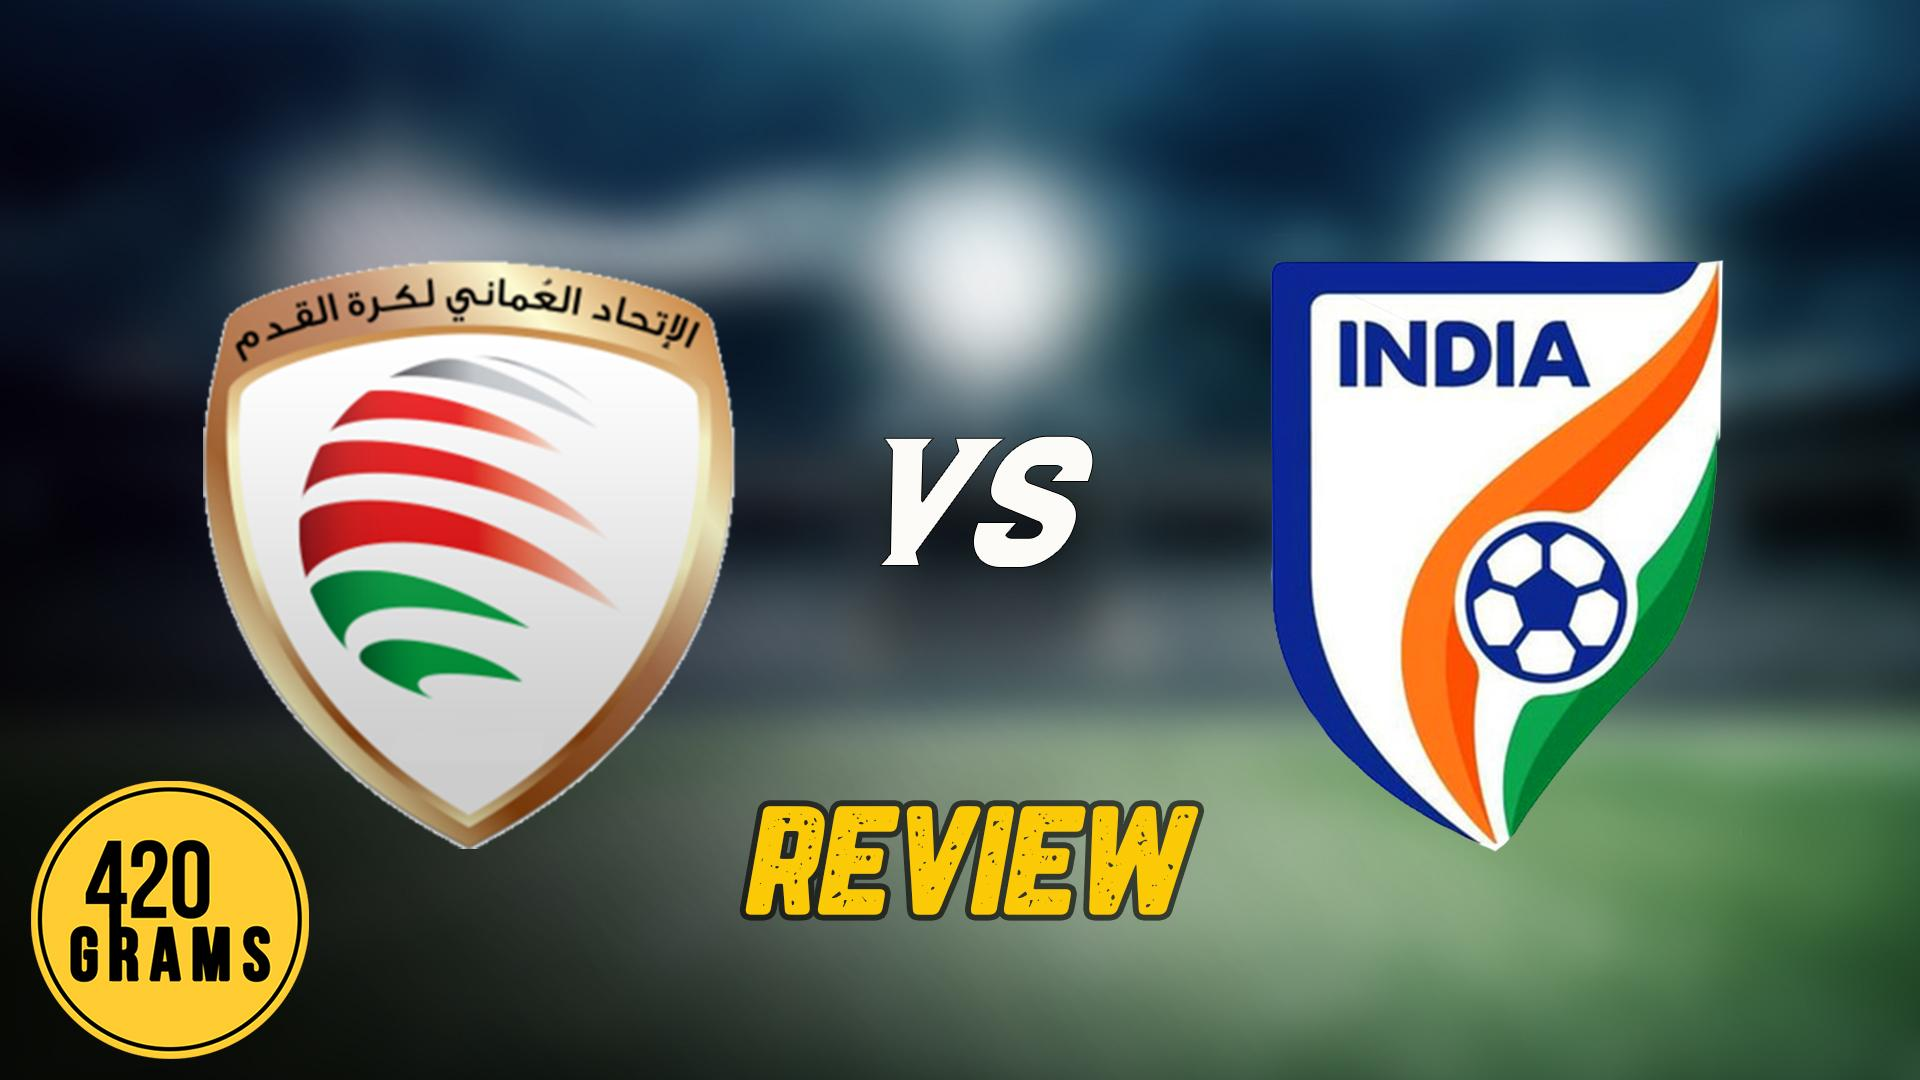 India vs Oman Review